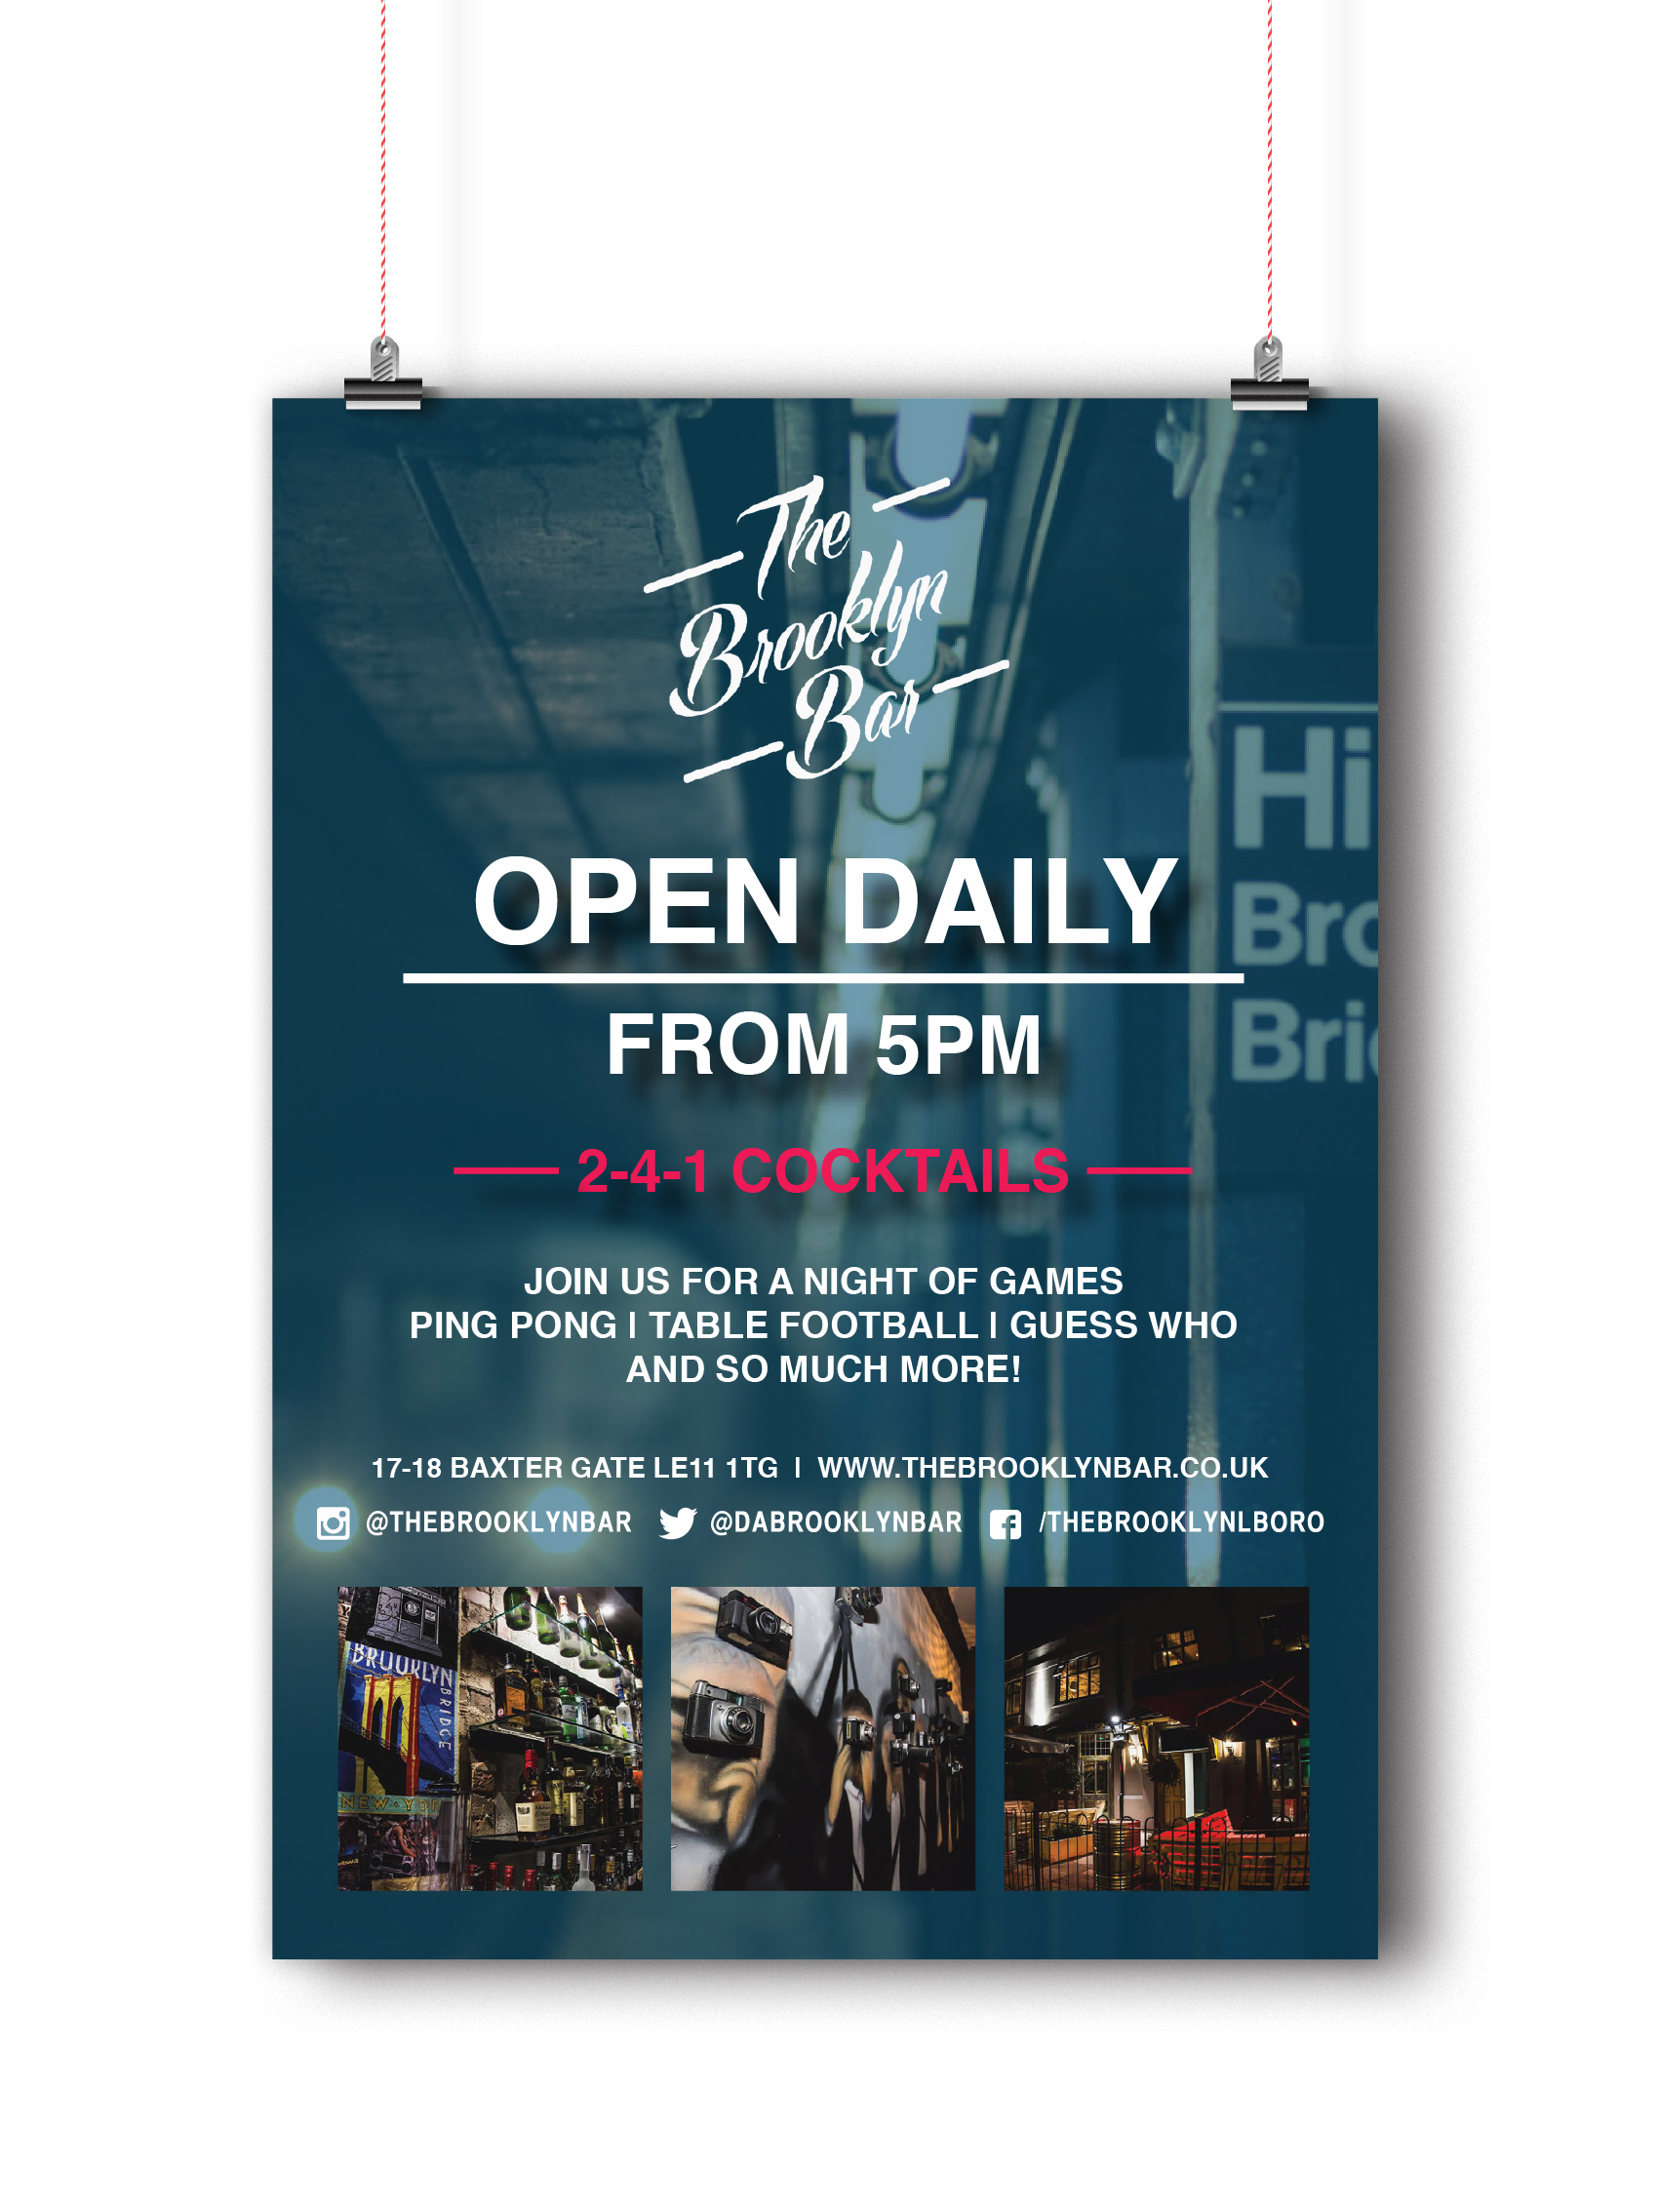 Opening times flyer